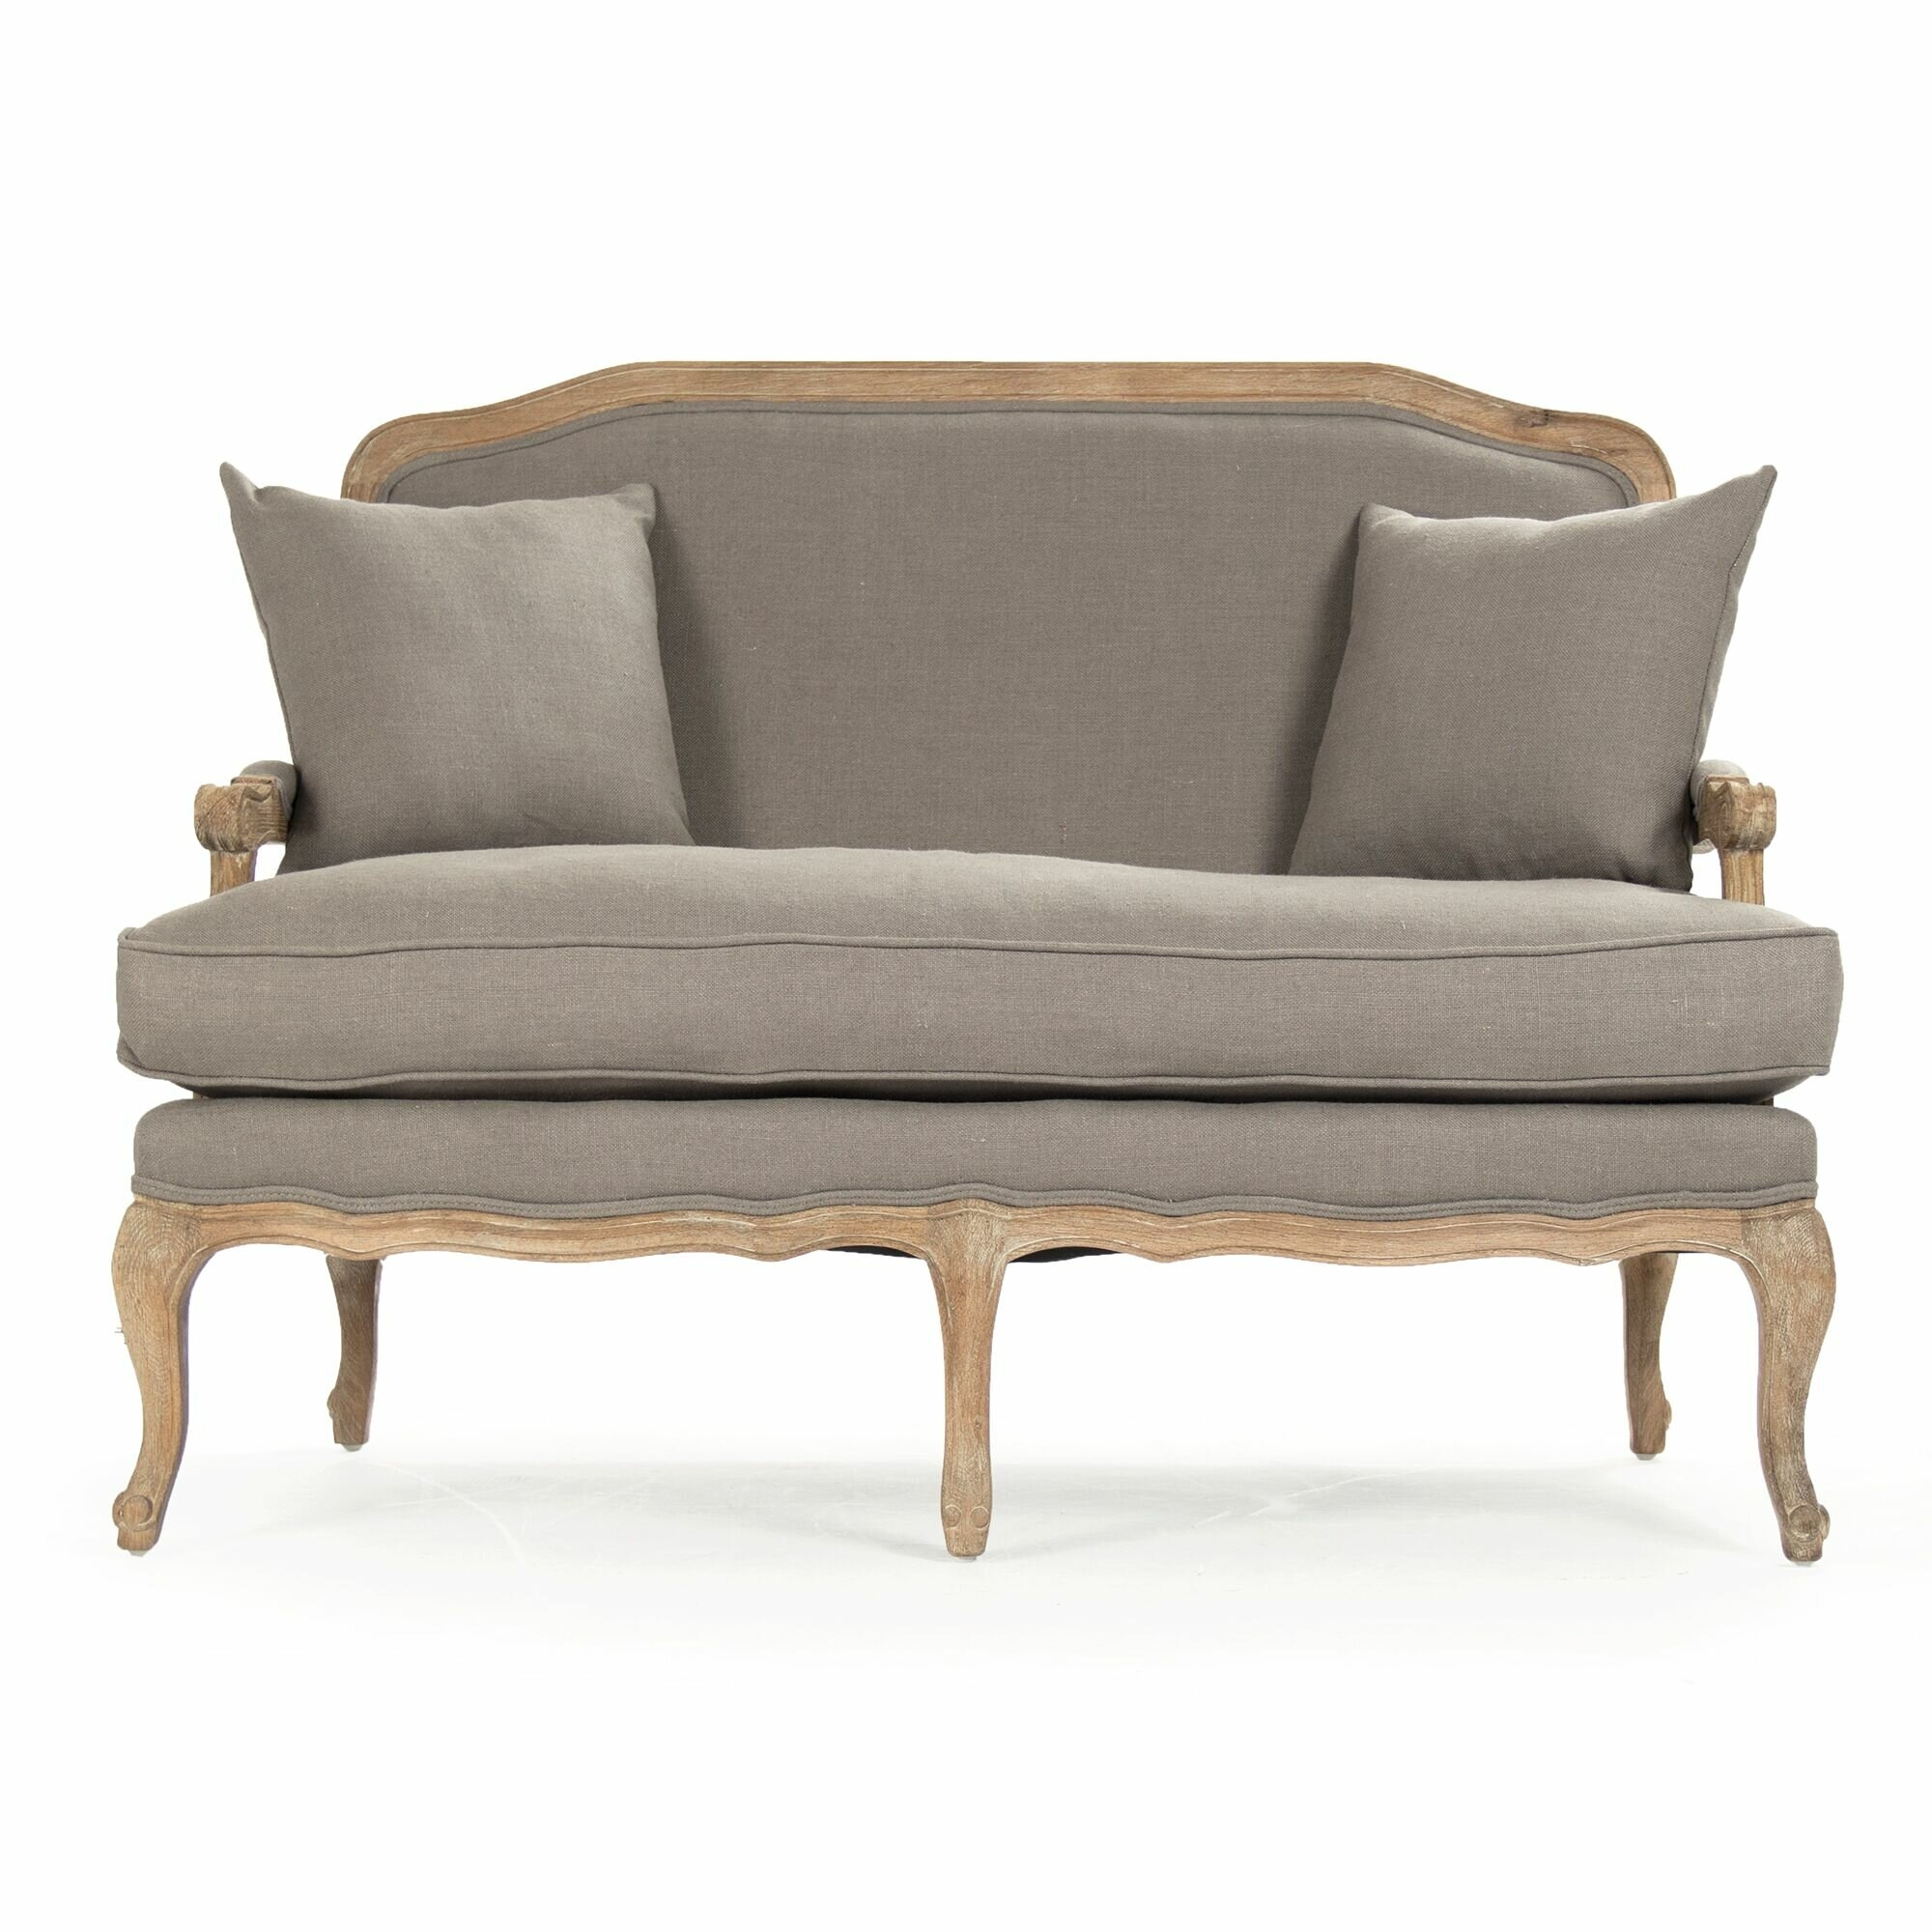 Traditional Design For An Old Fashioned Loveseat Couch With A Contemporary  Twist. The Frame Made Out Of Bright Birch Wood With A Distressed Coat Of  White ...